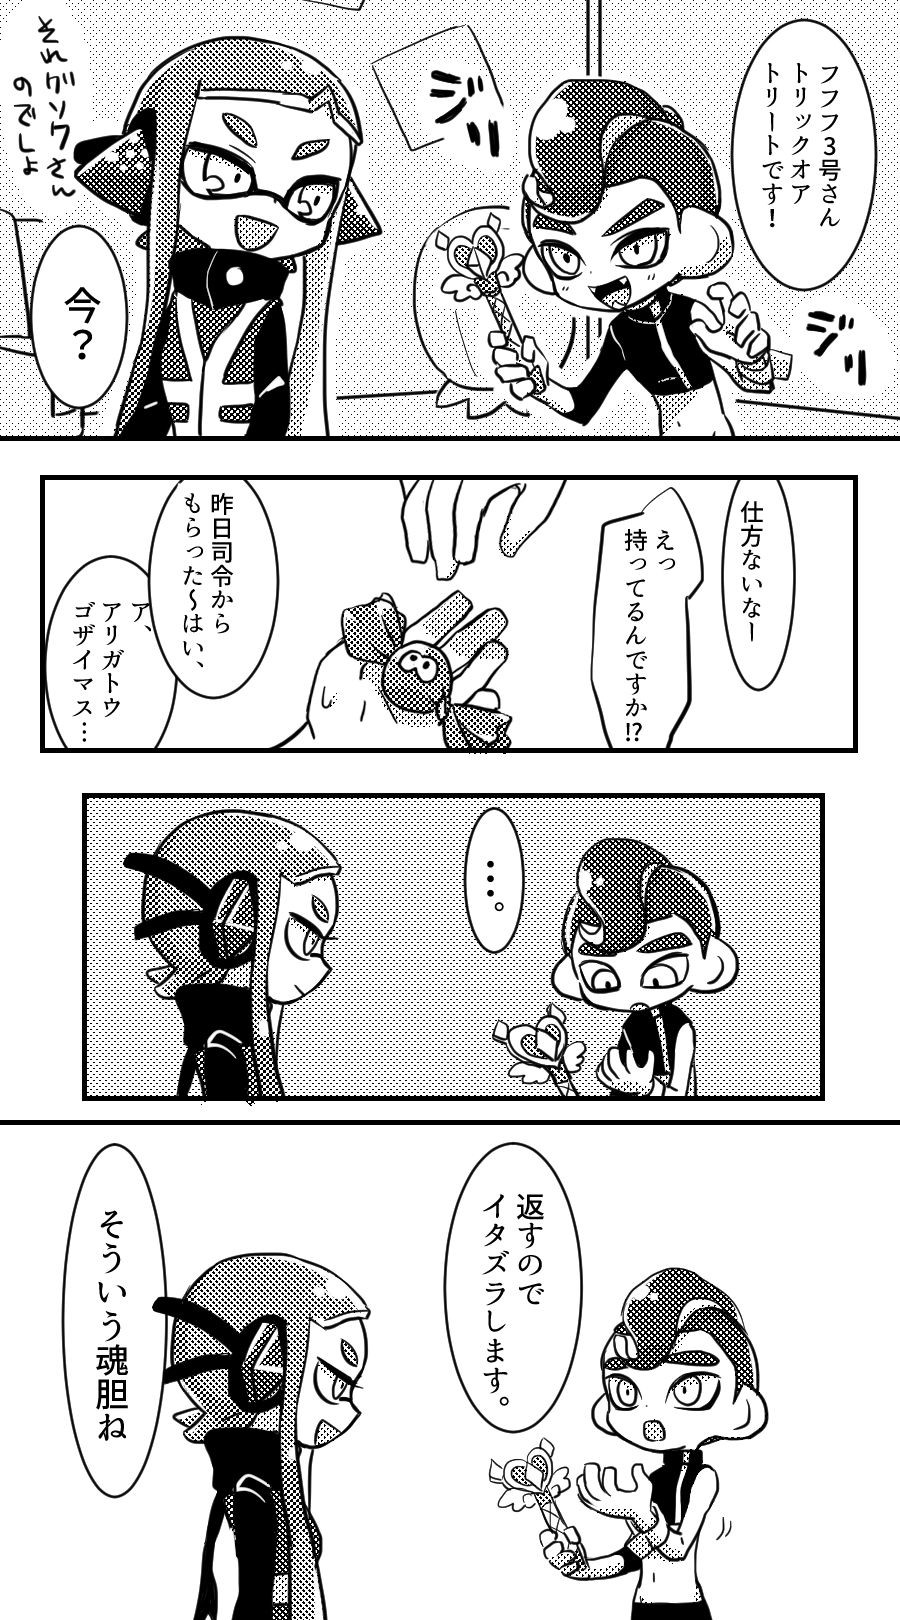 ... 1boy 1girl 4koma :d agent_8 candy closed_mouth comic domino_mask fangs food headgear highres holding holding_wand inkling long_hair mask miyashiro mohawk monochrome navel octarian octoling open_mouth short_hair single_sleeve smile splatoon splatoon_(series) splatoon_2 splatoon_2:_octo_expansion squidbeak_splatoon suction_cups tentacle_hair translation_request vest wand